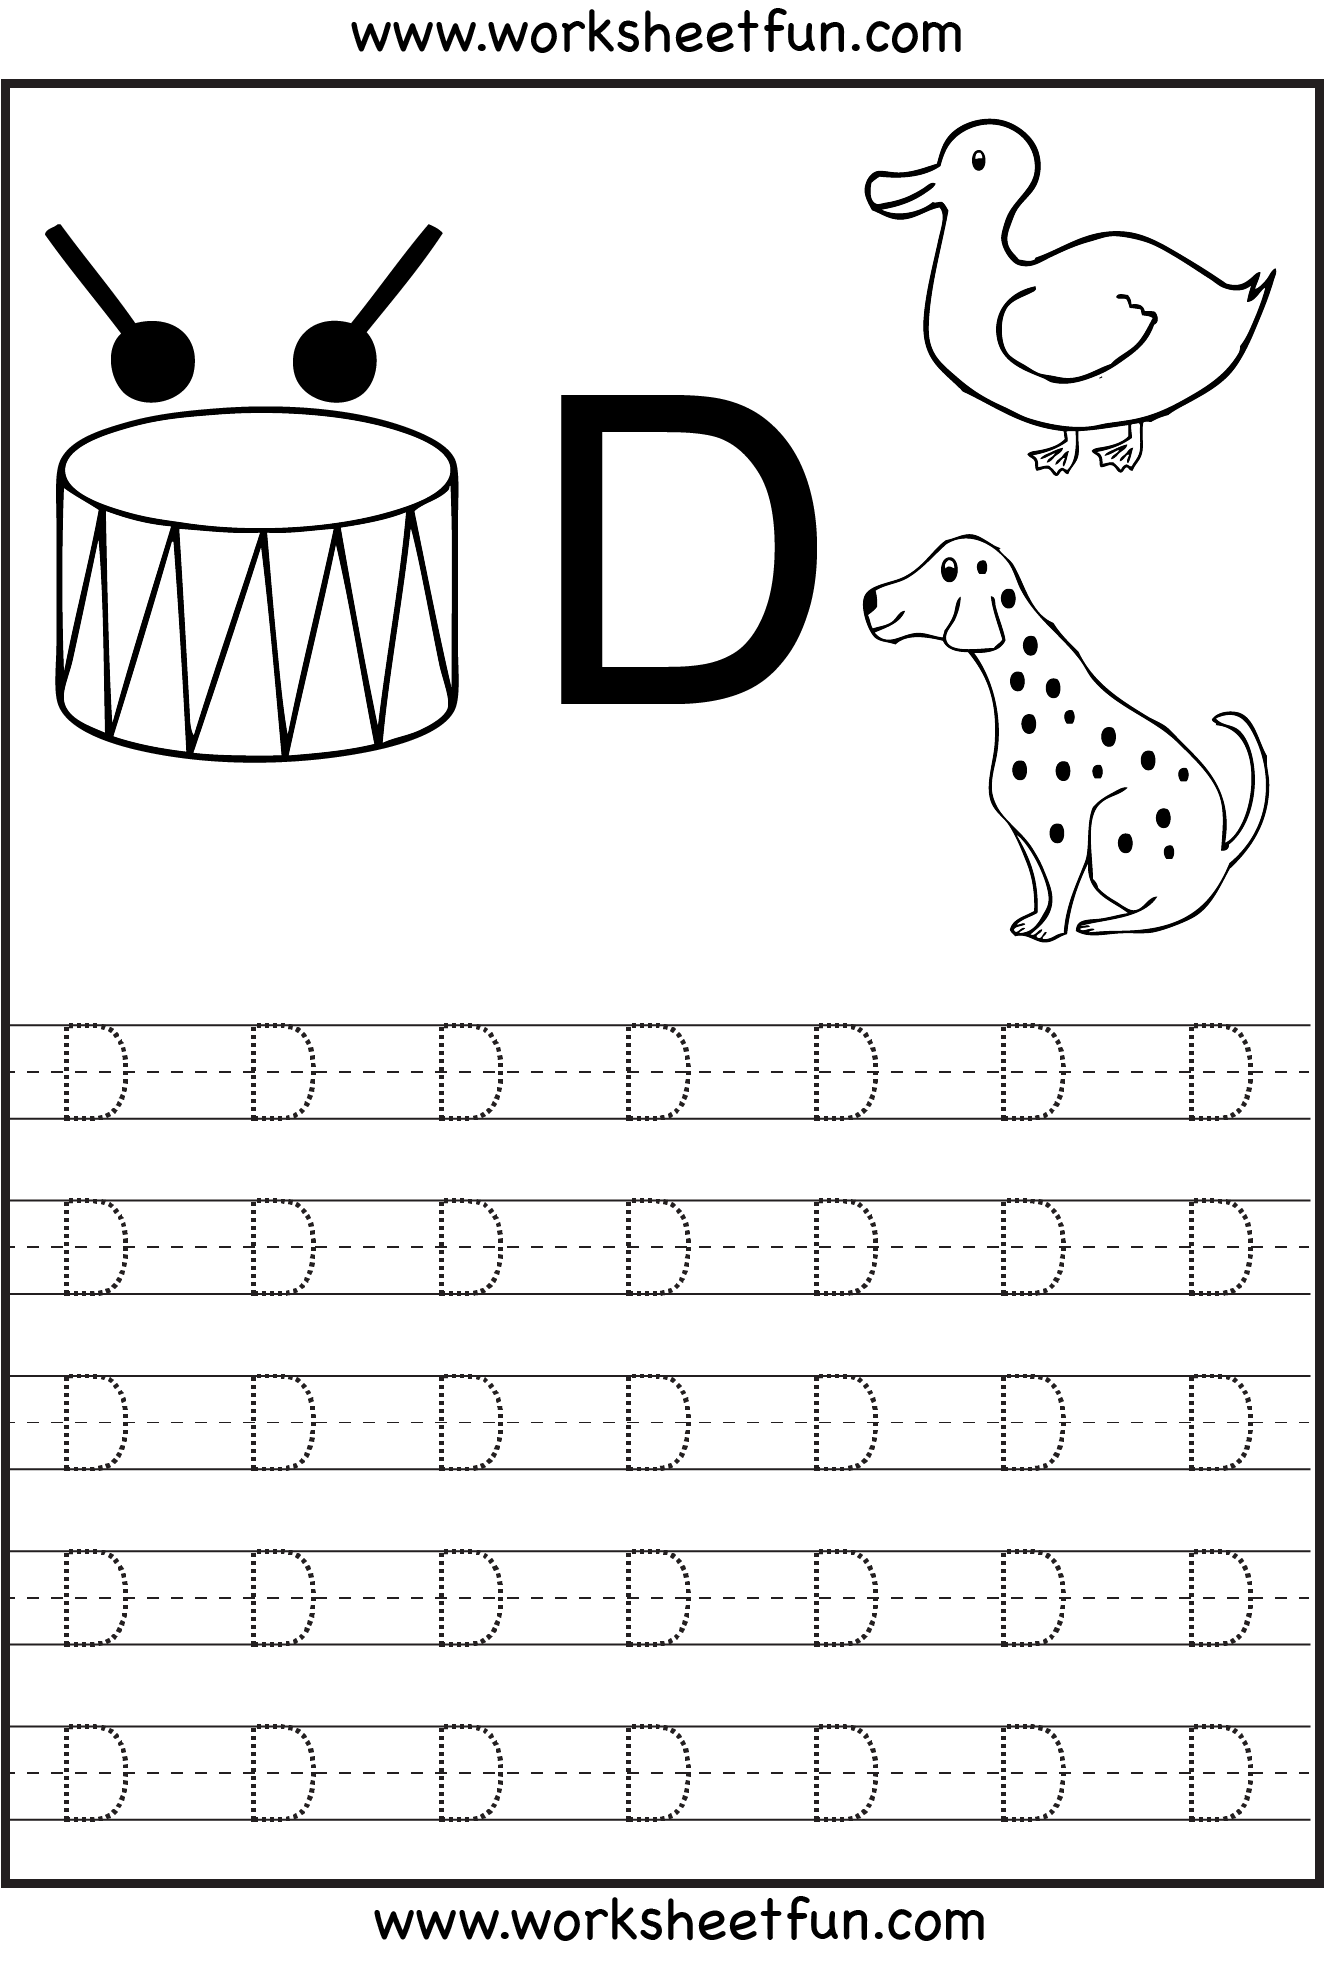 Worksheets Letter D Worksheets For Preschool letterdtracingworksheets activities pinterest letter letterdtracingworksheets